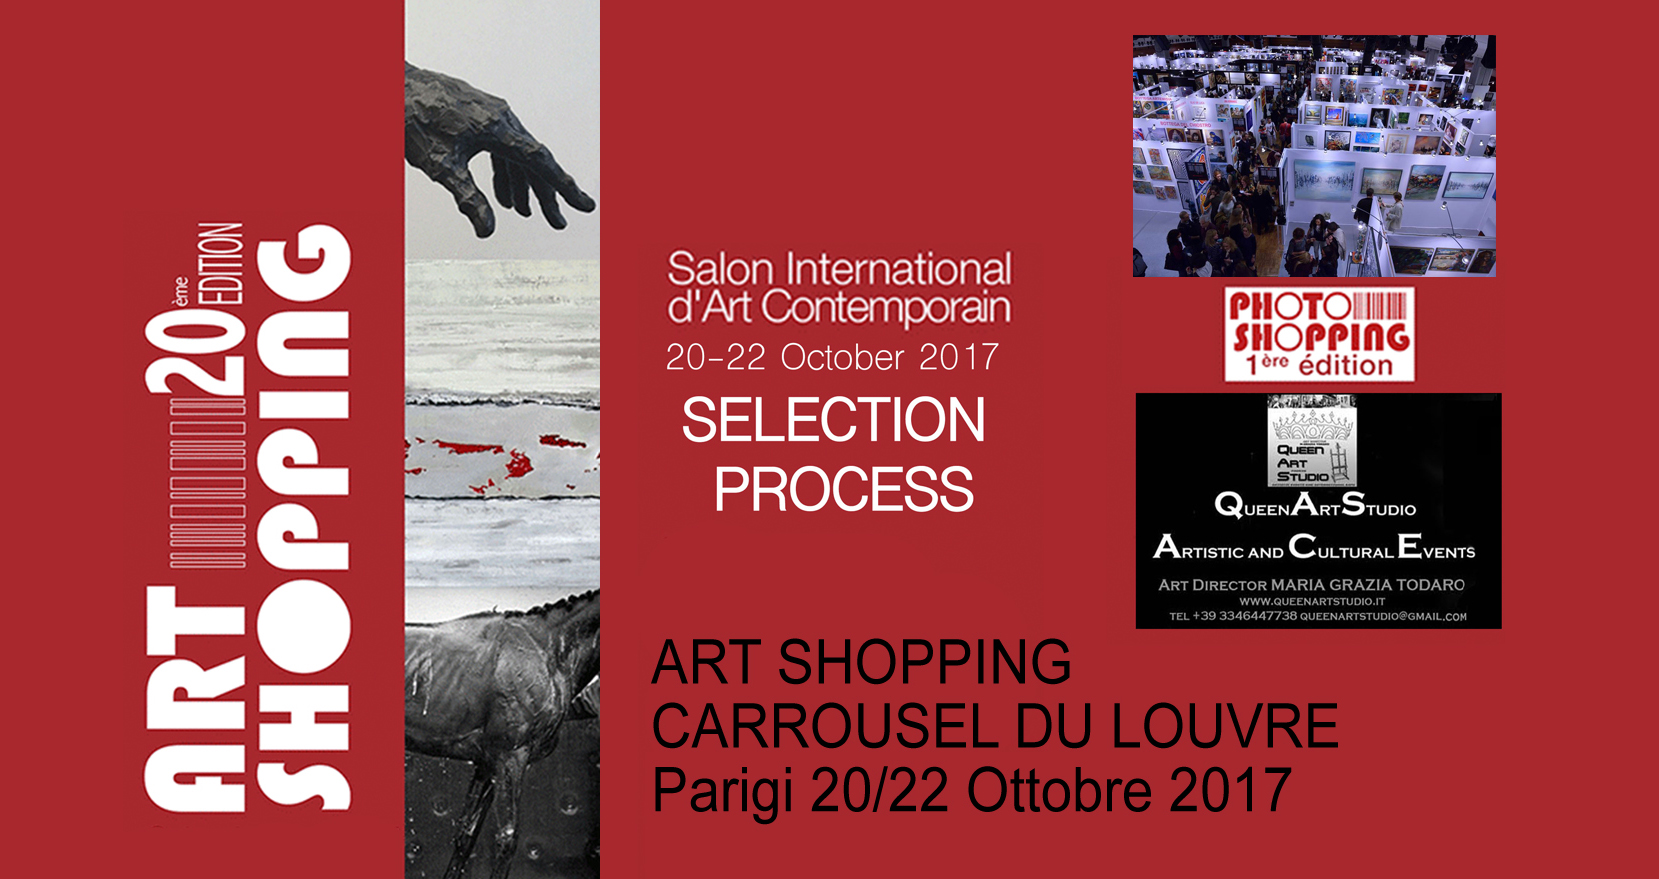 Art Shopping 20° Edizione al Carrousel du Louvre di Parigi - Selection process